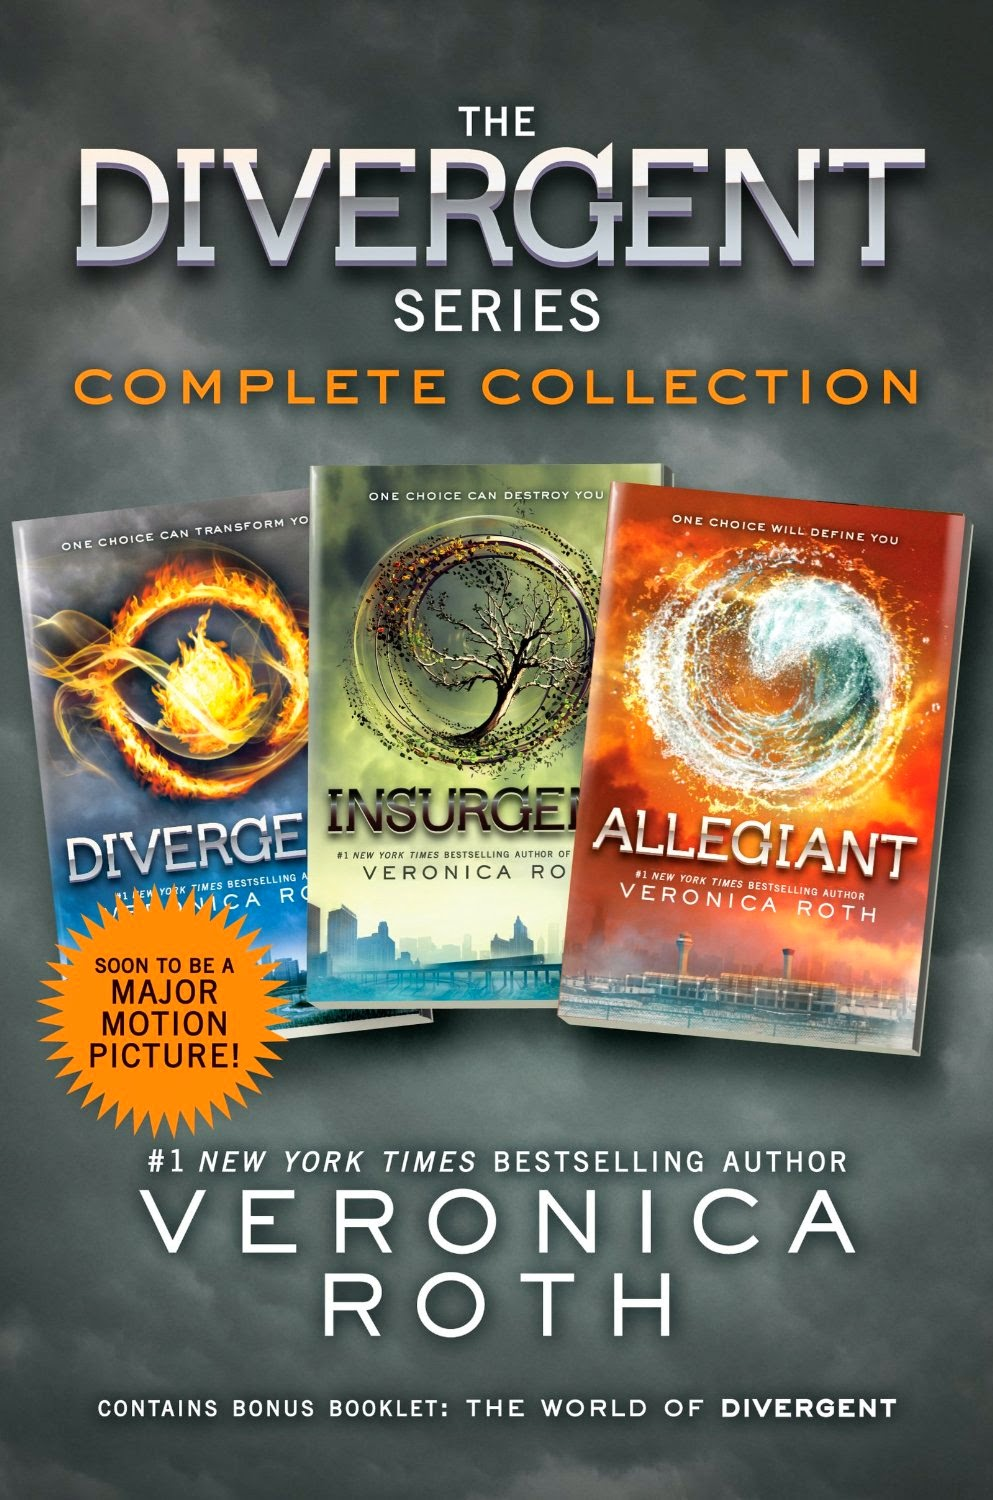 http://www.amazon.com/Divergent-Complete-Collection-Veronica-Roth-ebook/dp/B00BW3AY64/ref=la_B004FX672S_1_1_title_0_main?s=books&ie=UTF8&qid=1395372640&sr=1-1